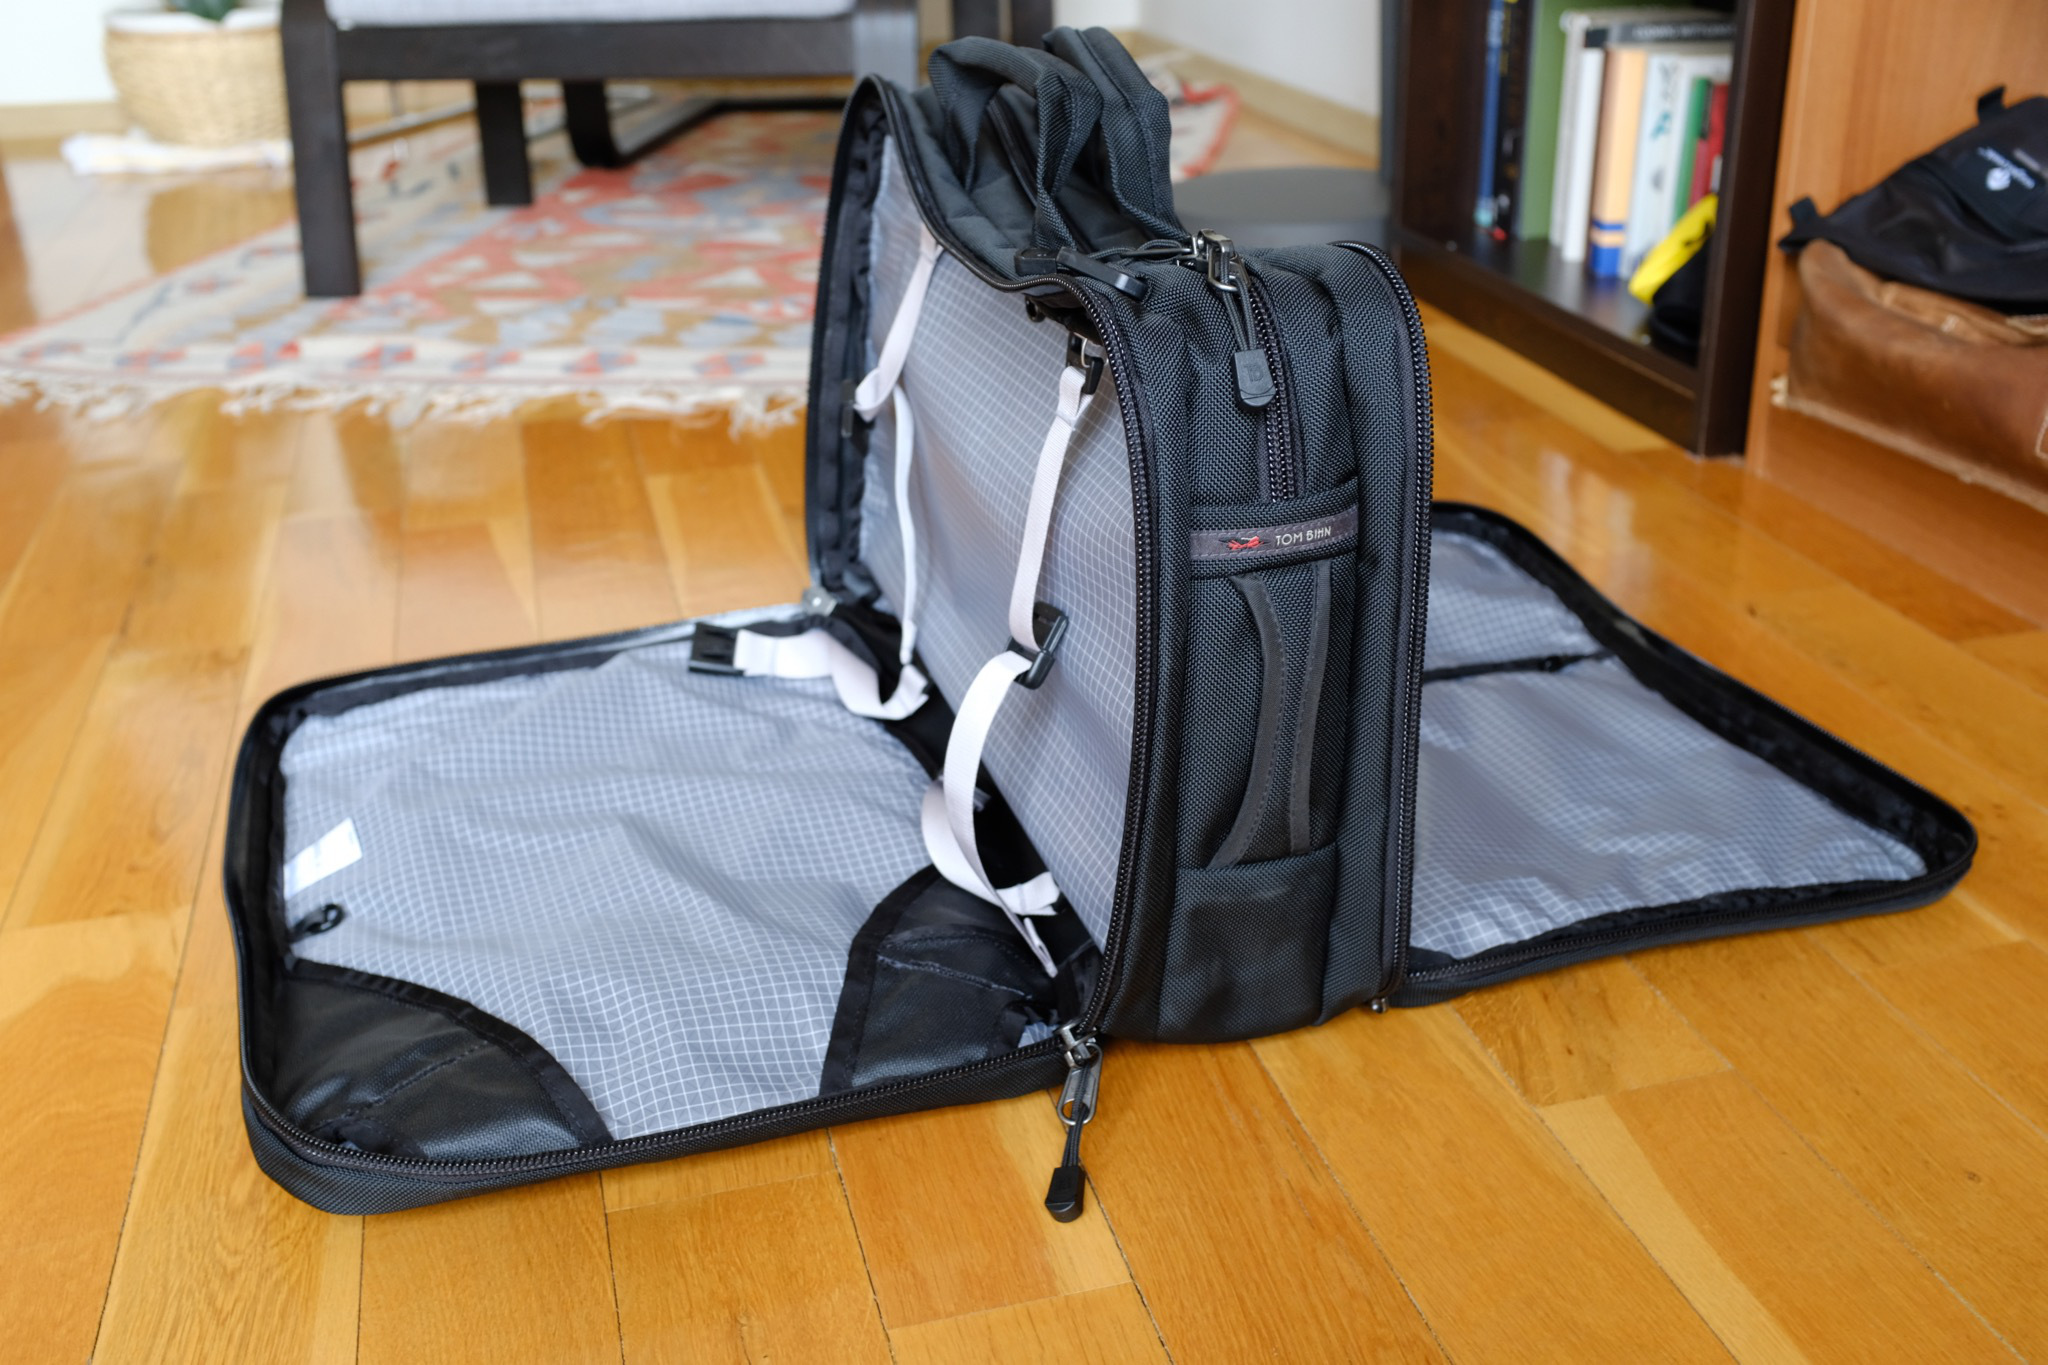 The front and back compartment can be laid out like a suitcase